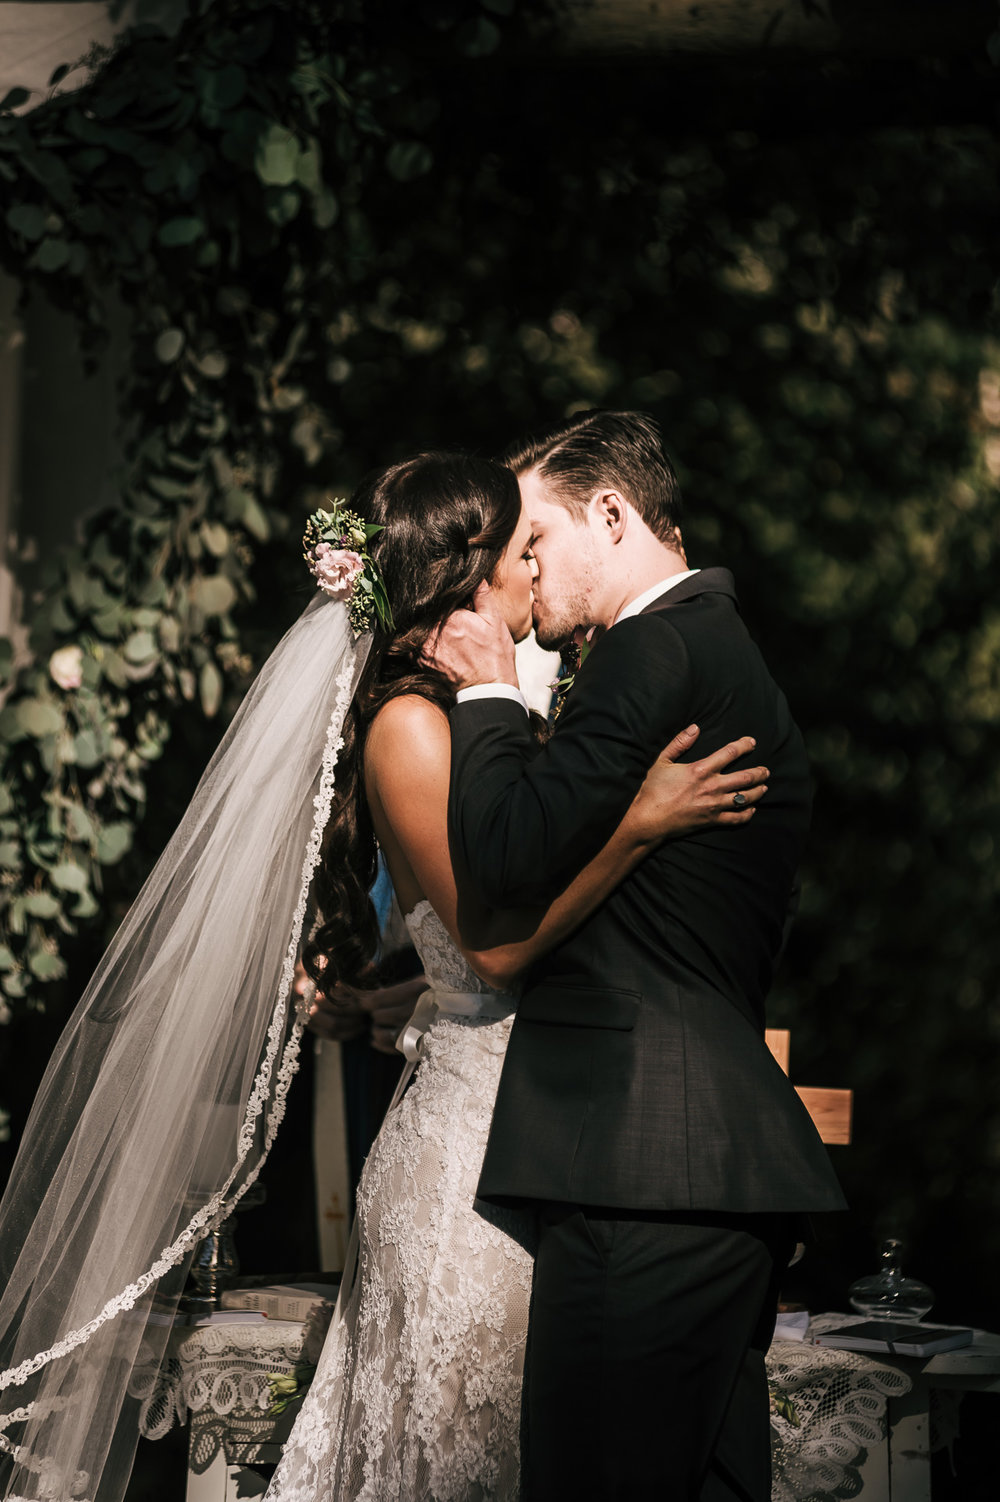 Passionate first kiss at this rustic Quail Haven Farm ceremony.